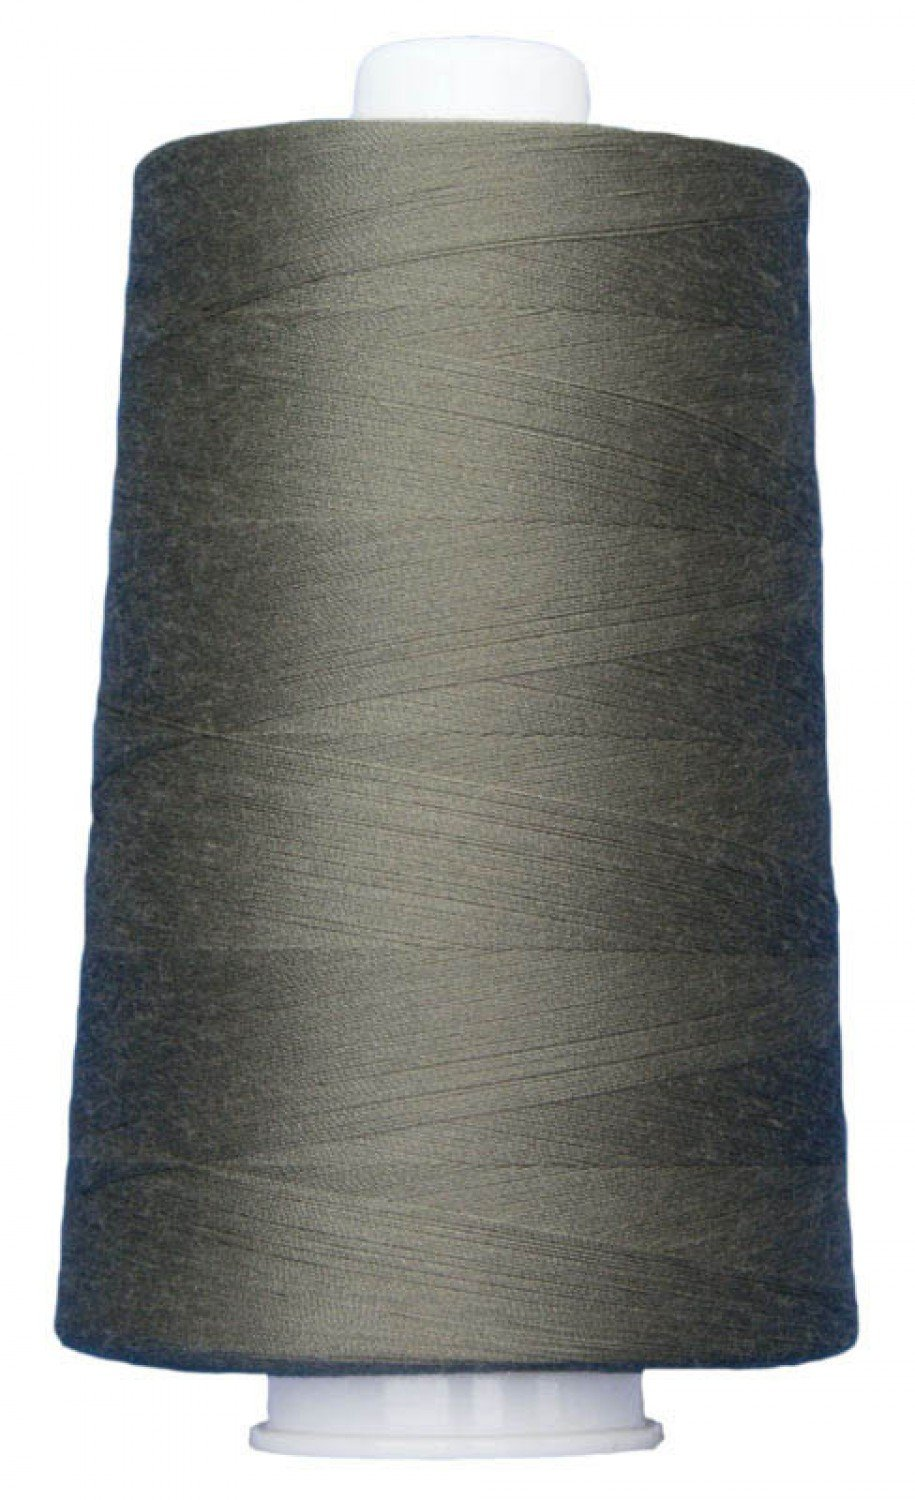 OMNI Polyester Thread 40 wt 6000 yds 3020 Grey Slate by Superior